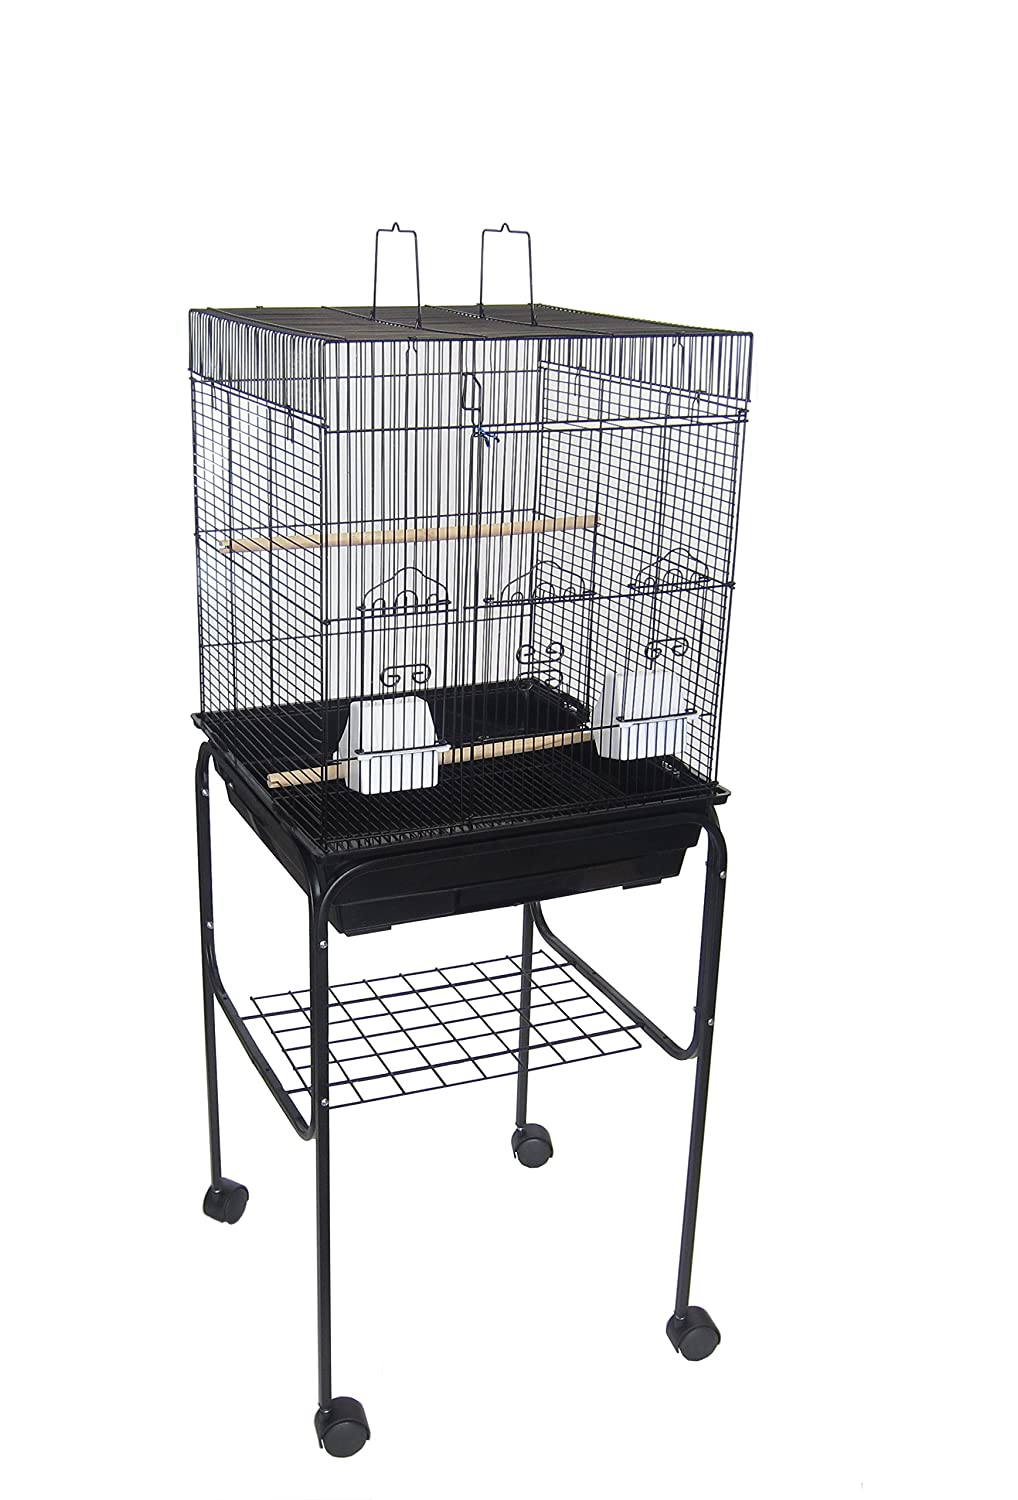 Yml 5924 3/8-Inch Bar Spacing Flat Top Small Bird Cage with Stand-18-Inch X18-Inch in Black 5924_4814BLK